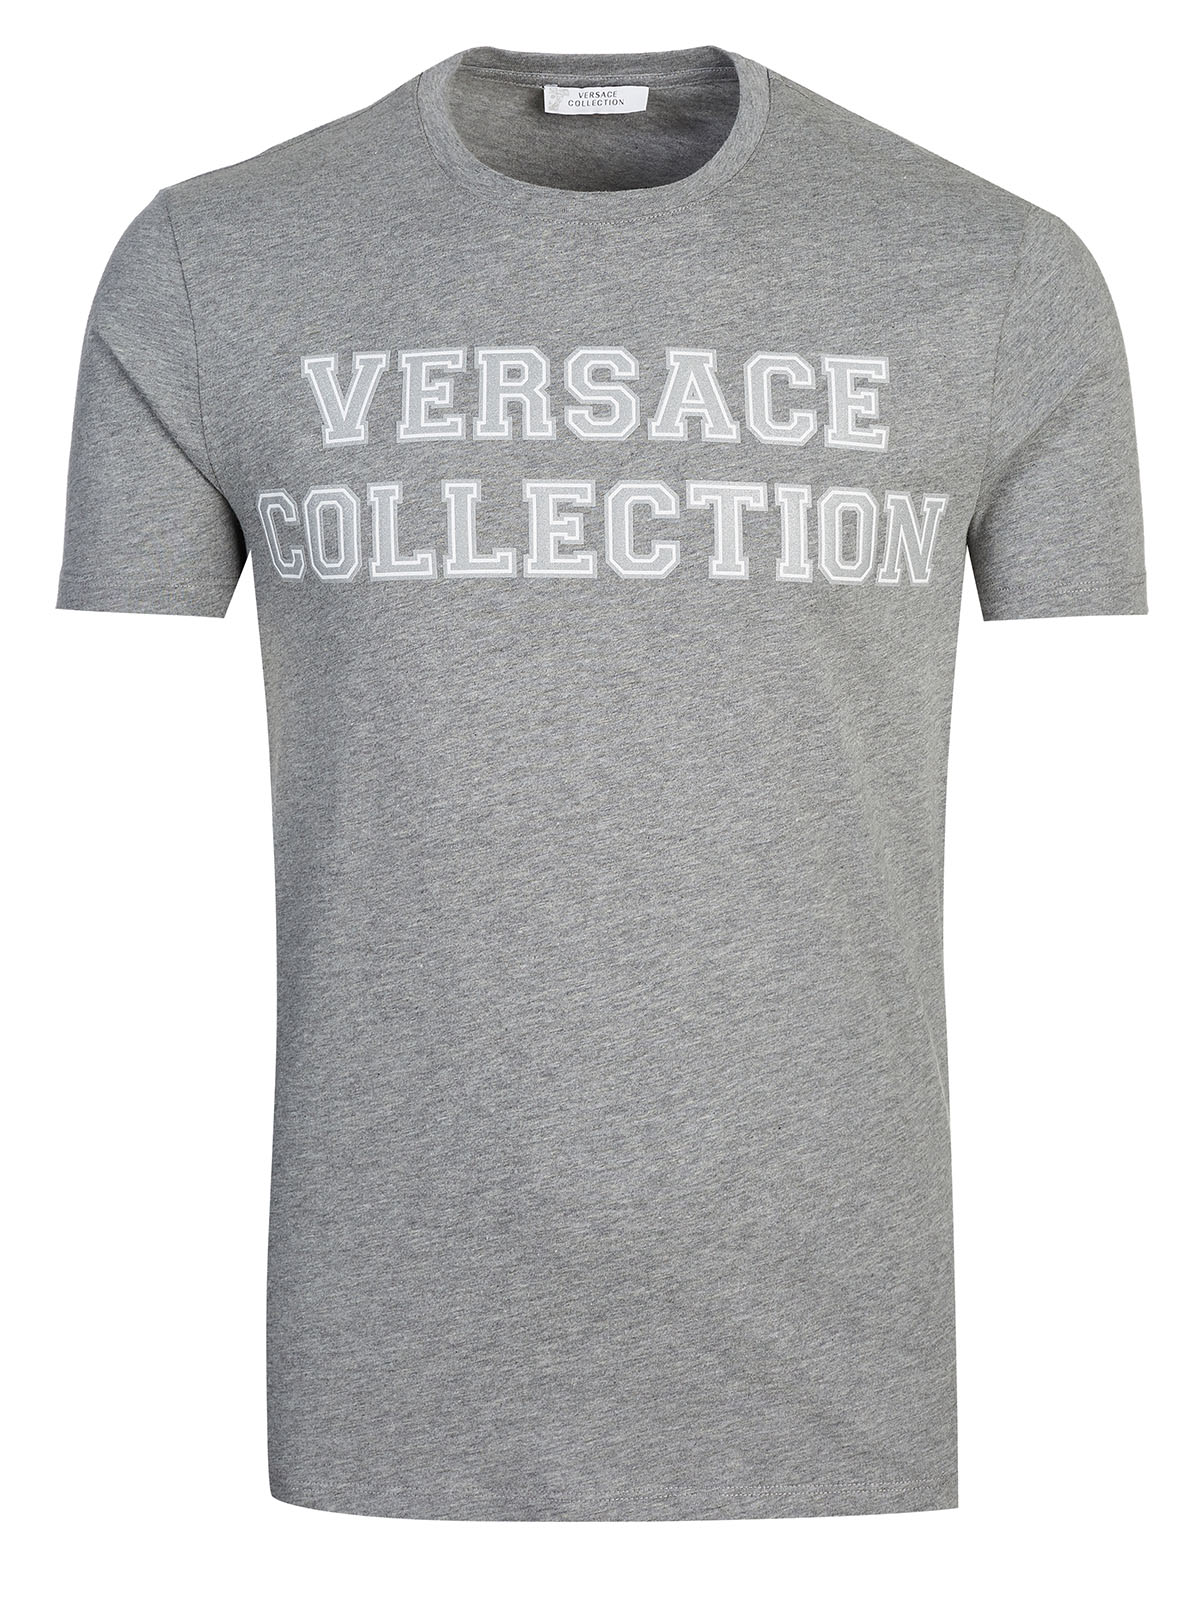 New Versace T-Shirt  100/% Cotton Size XL